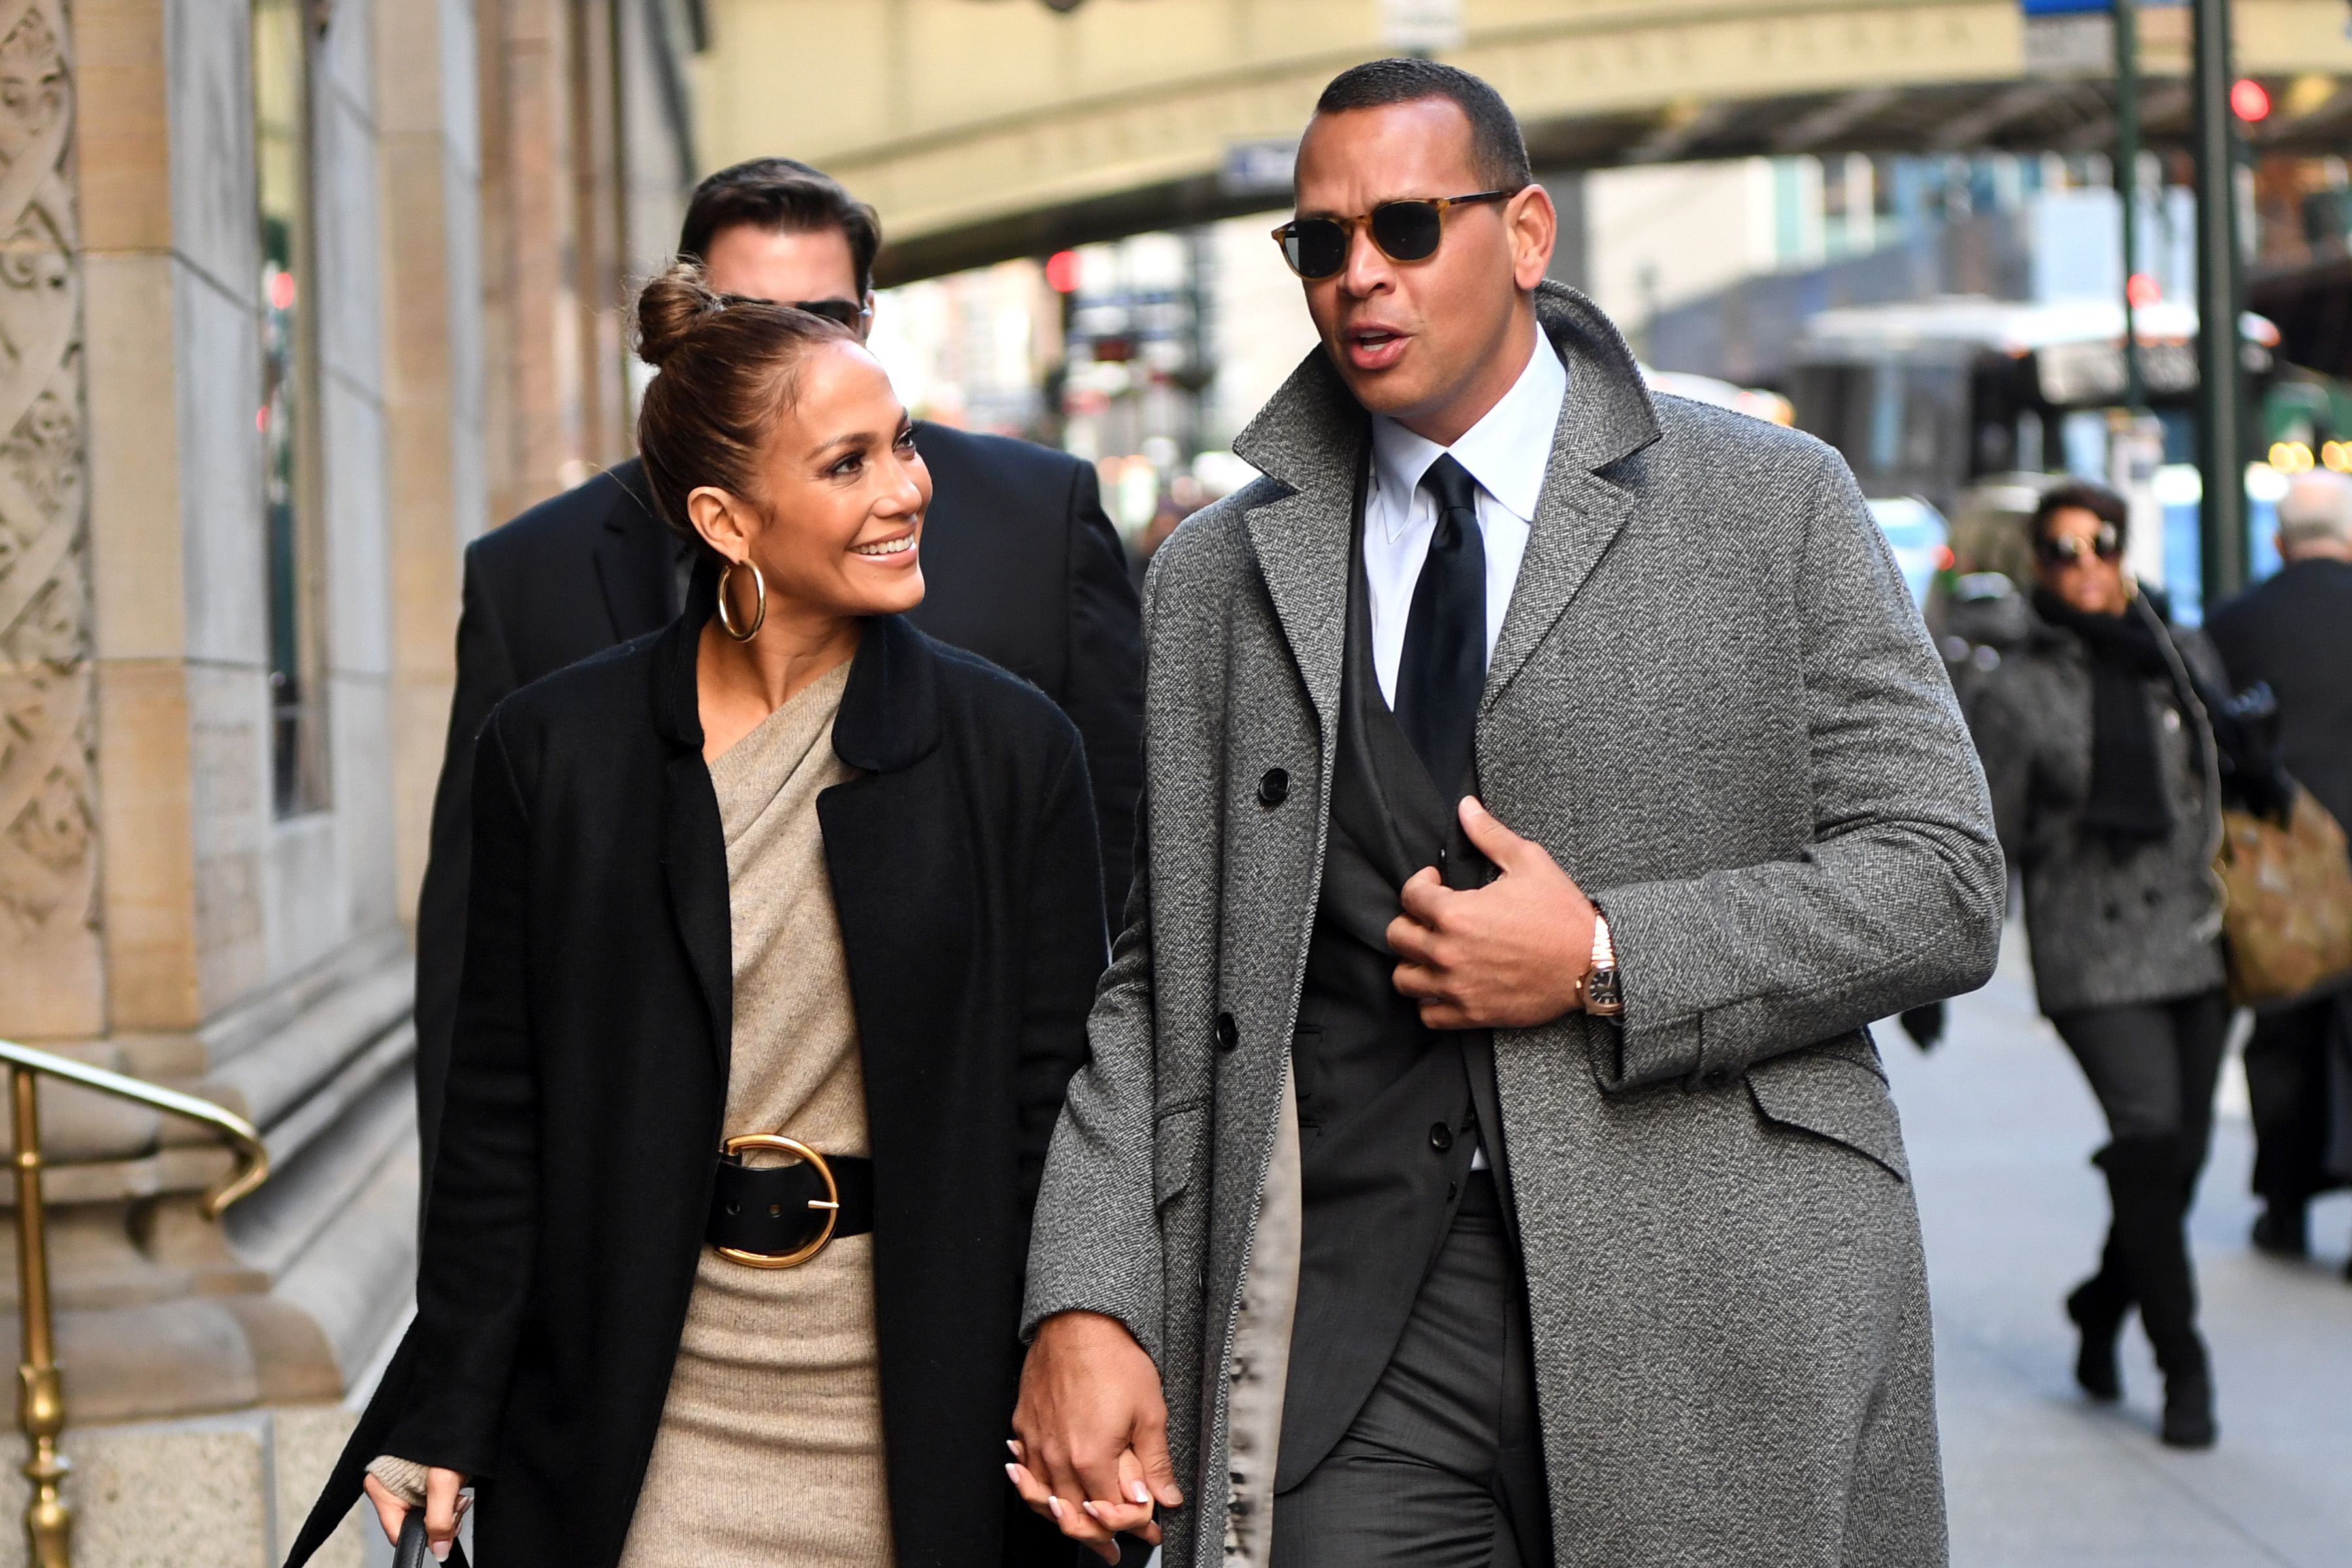 EXCLUSIVE: Jennifer Lopez Steps our for breakfast with her boyfriend Alex Rodriguez this morning